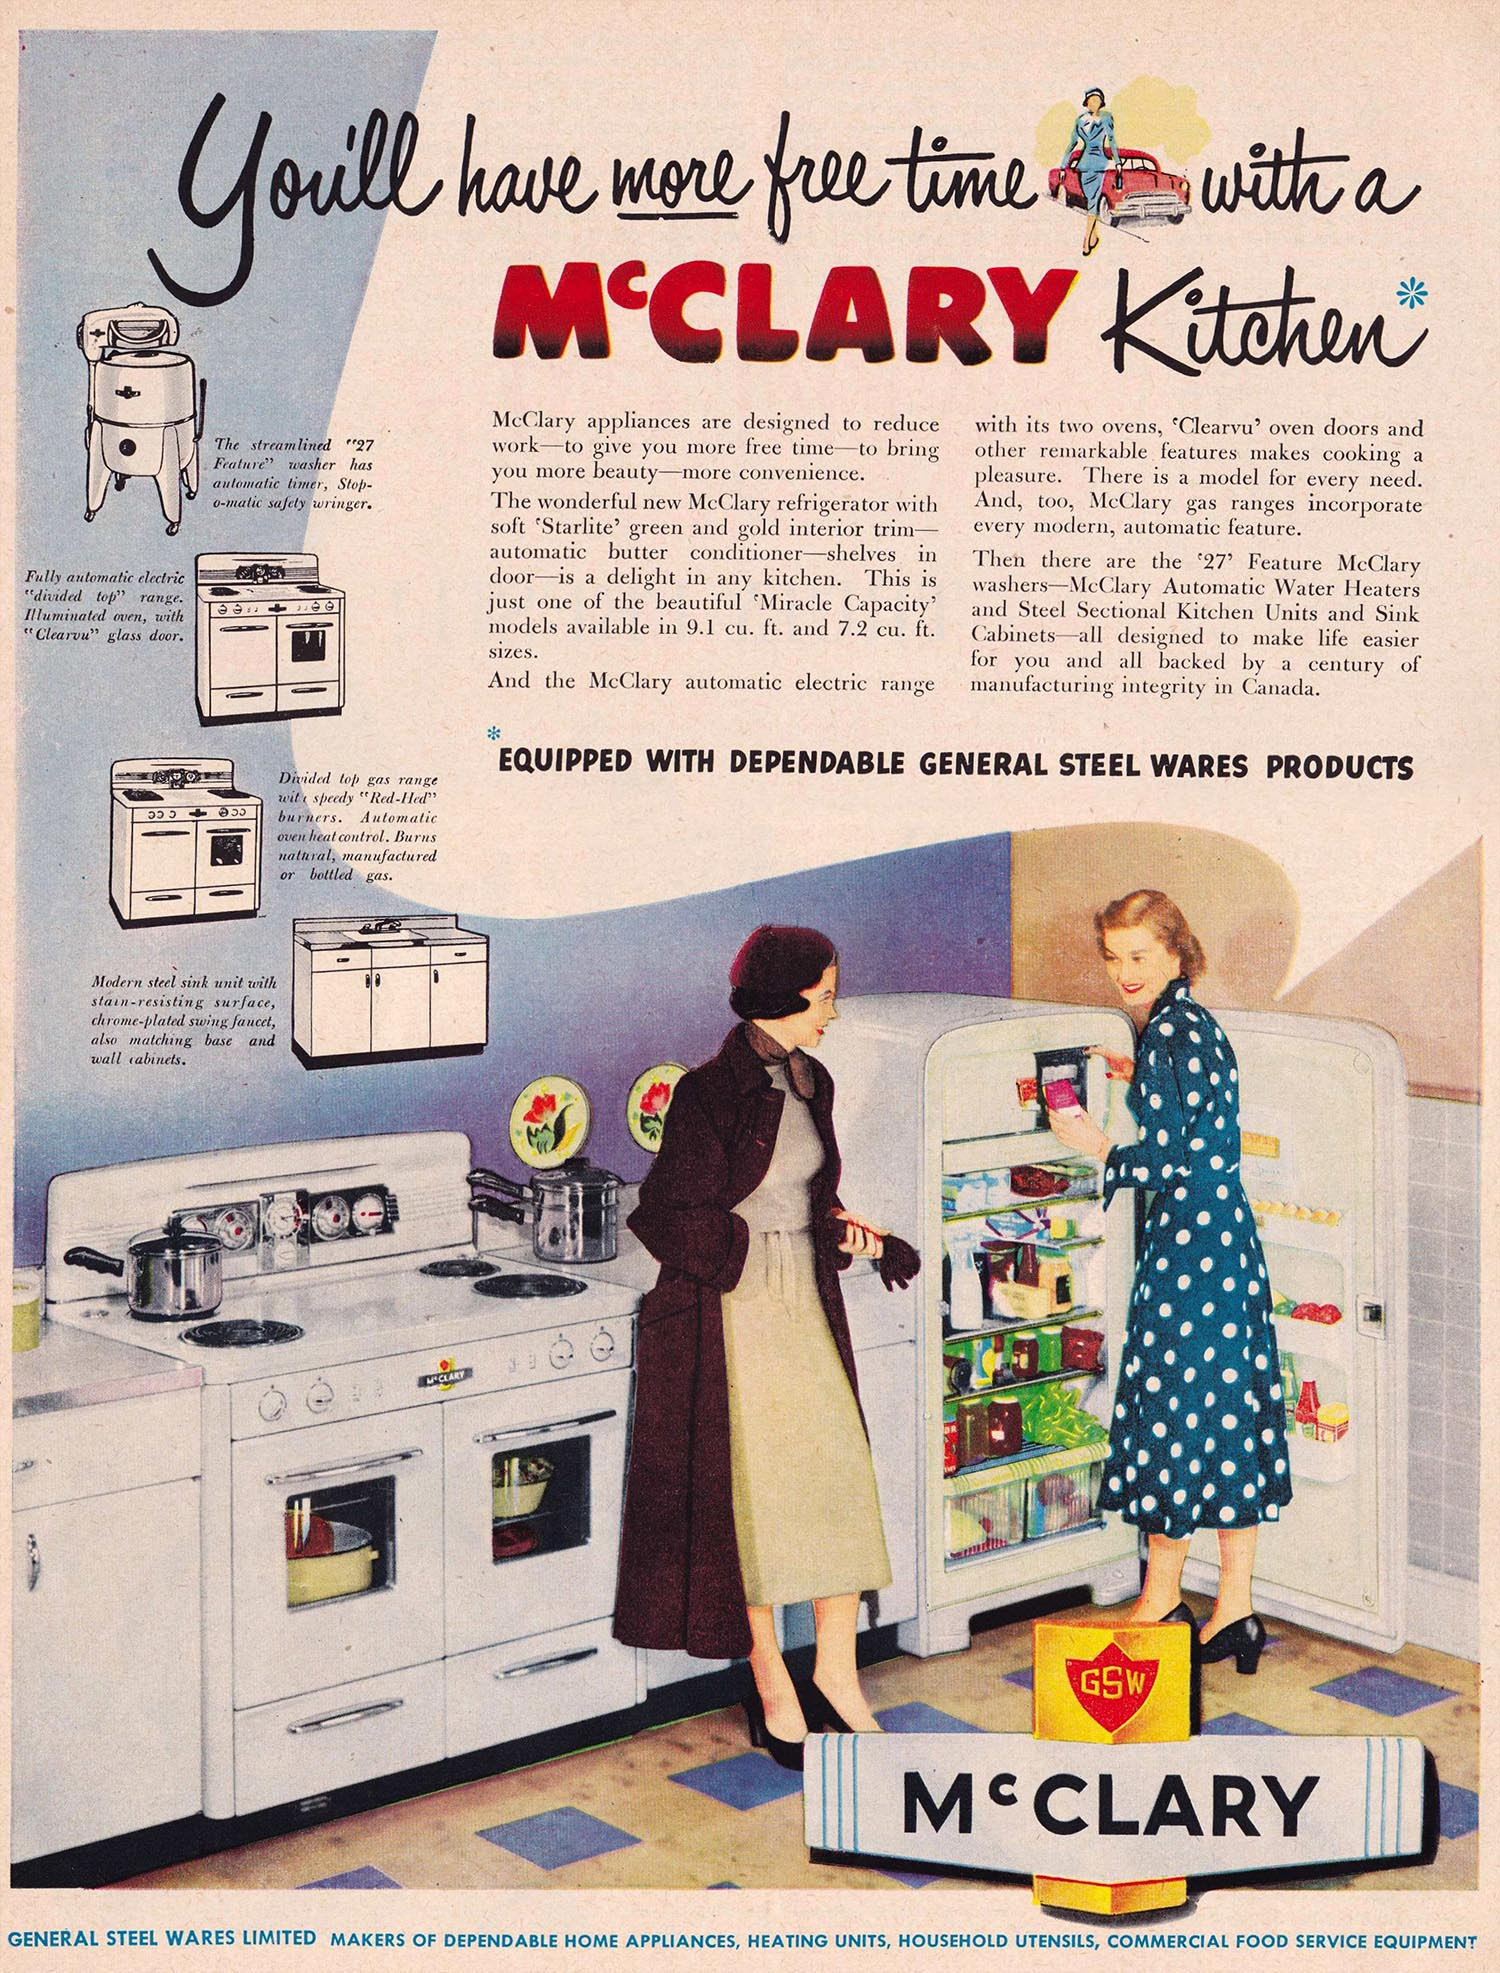 This Advert From 1968 Features A Woman Literally Gobsmacked By Her Washer S Agitator And Well She Should Be The New Appliance Component Has Appaly